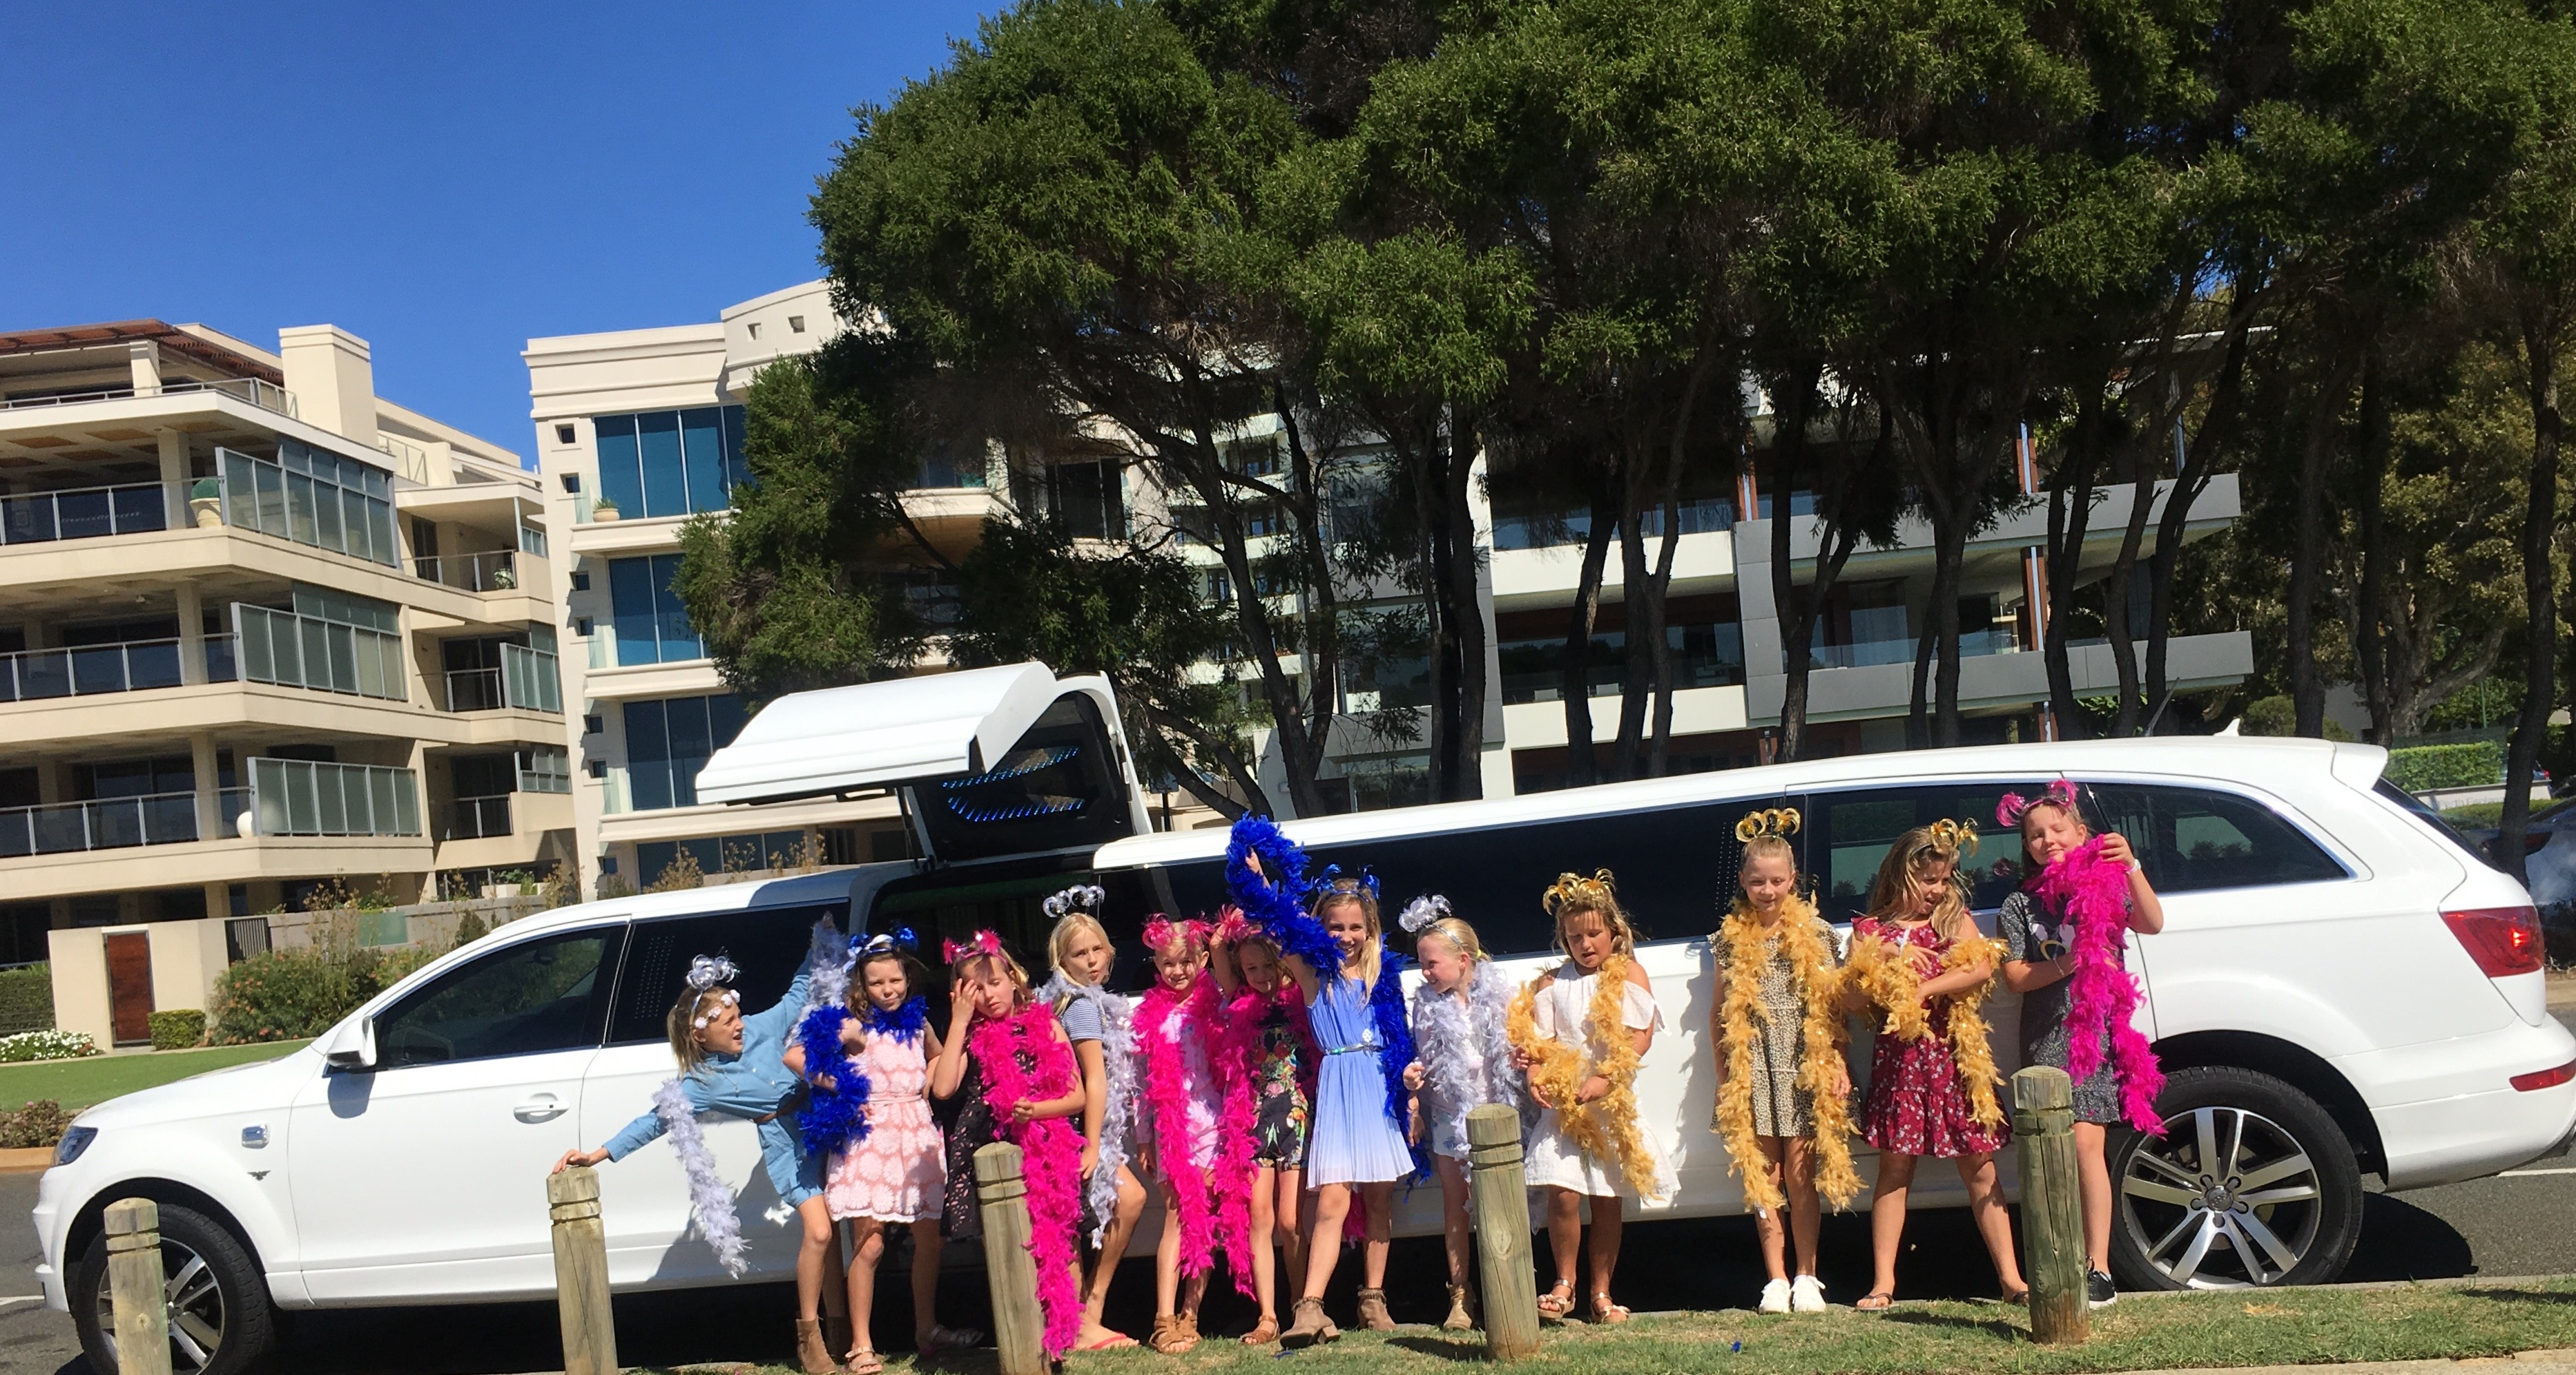 IMG_0330 - Lily Party - Limo